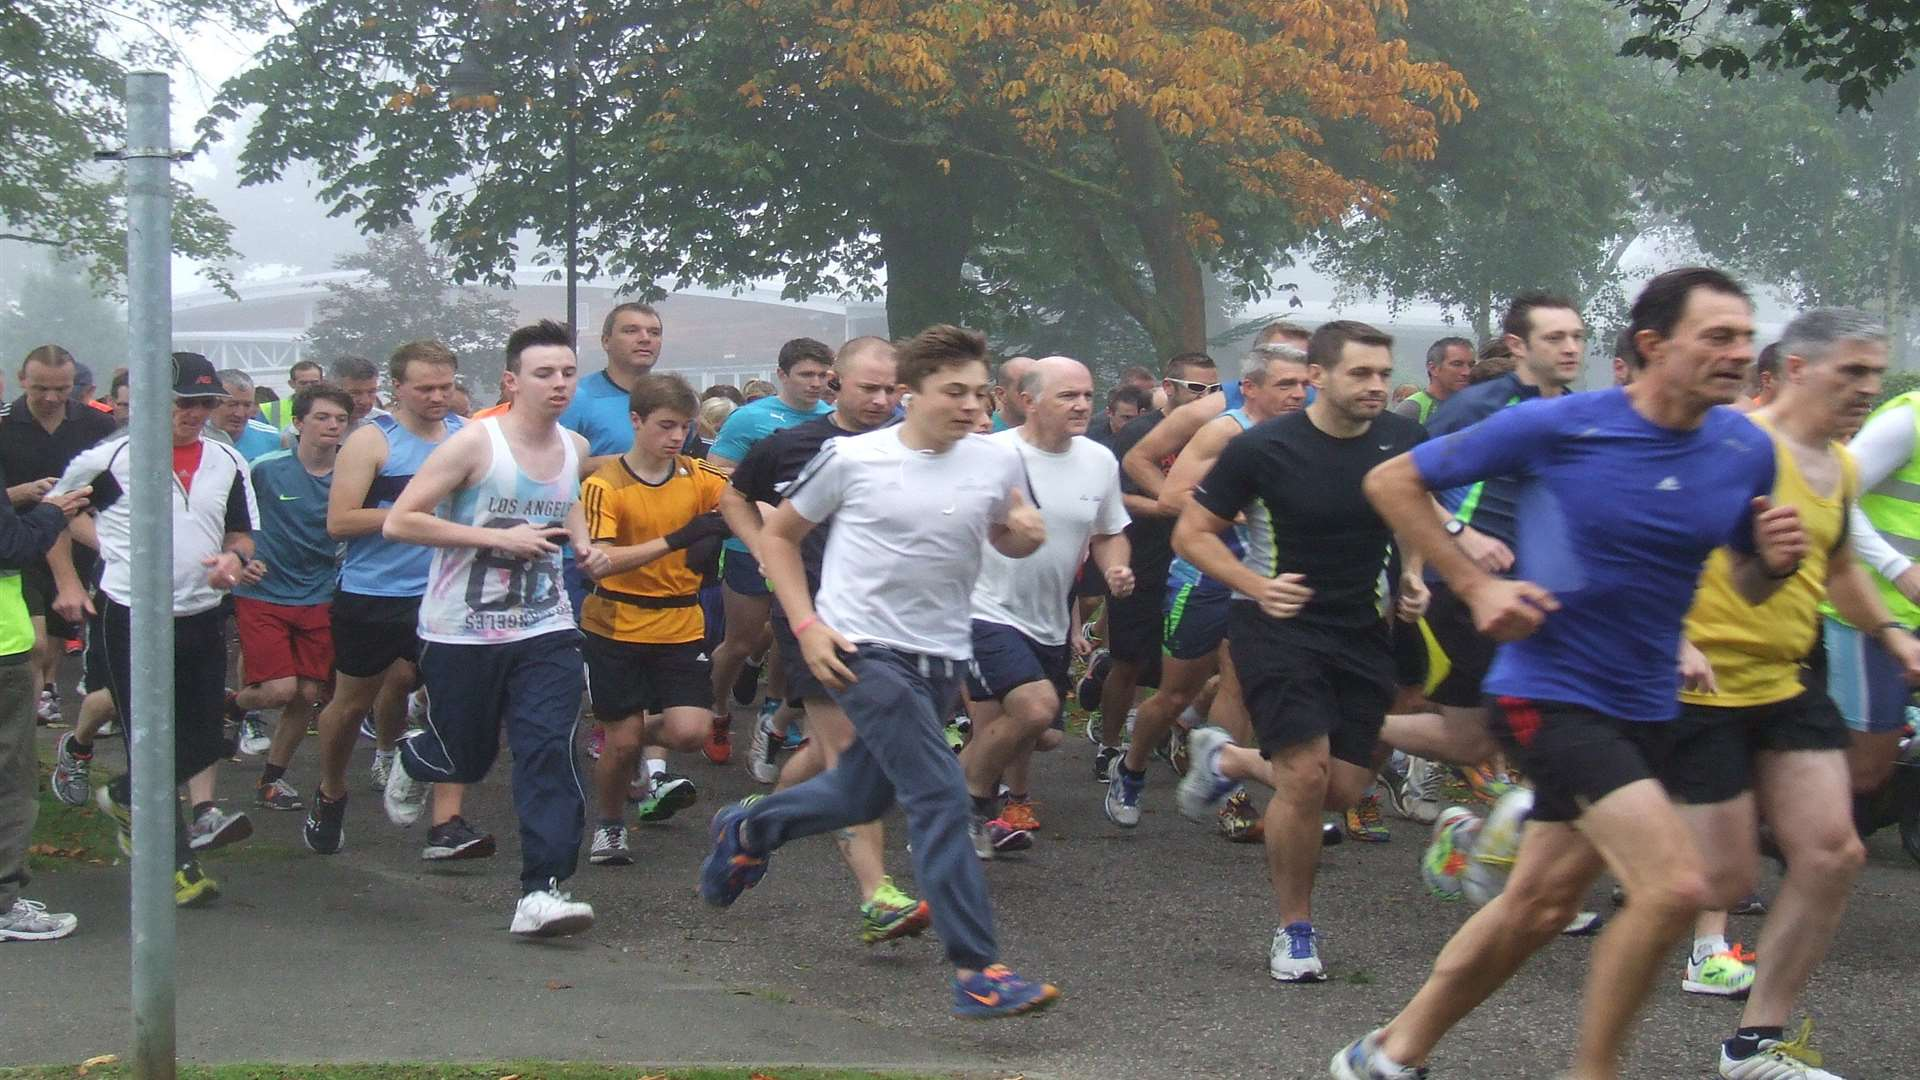 Runners in Ashford.